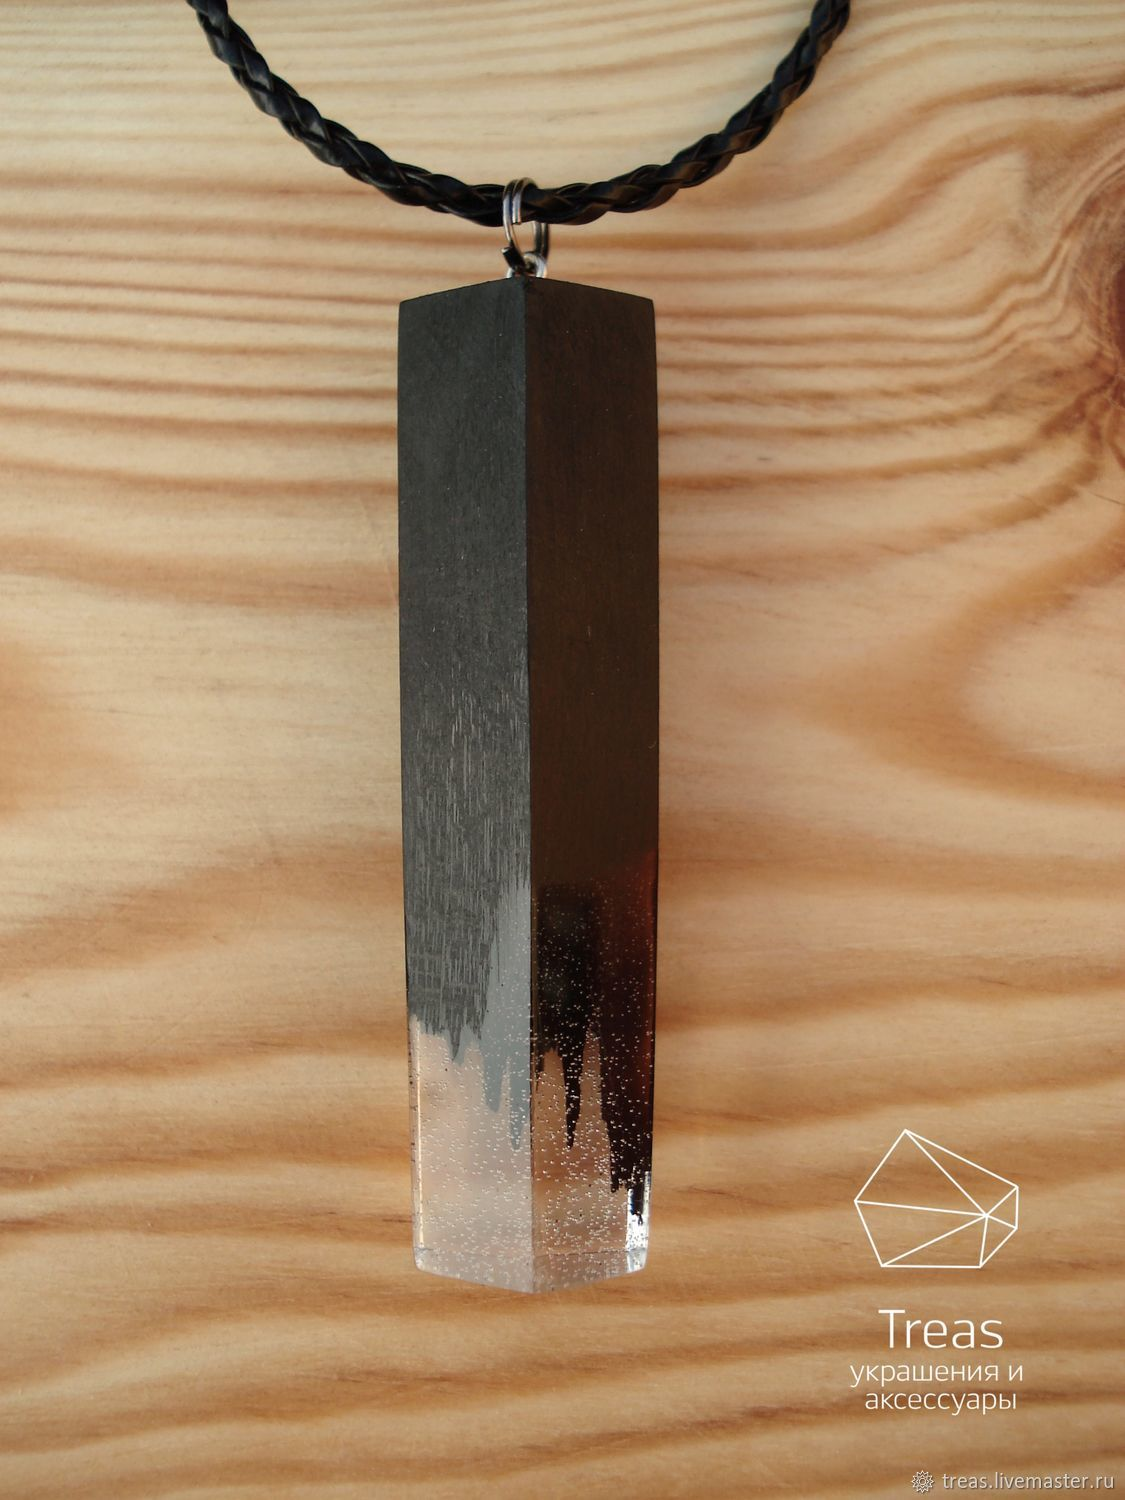 Pendant made of black hornbeam and resin shop online on livemaster pendant made of black hornbeam and resin treas ornaments made of mozeypictures Choice Image